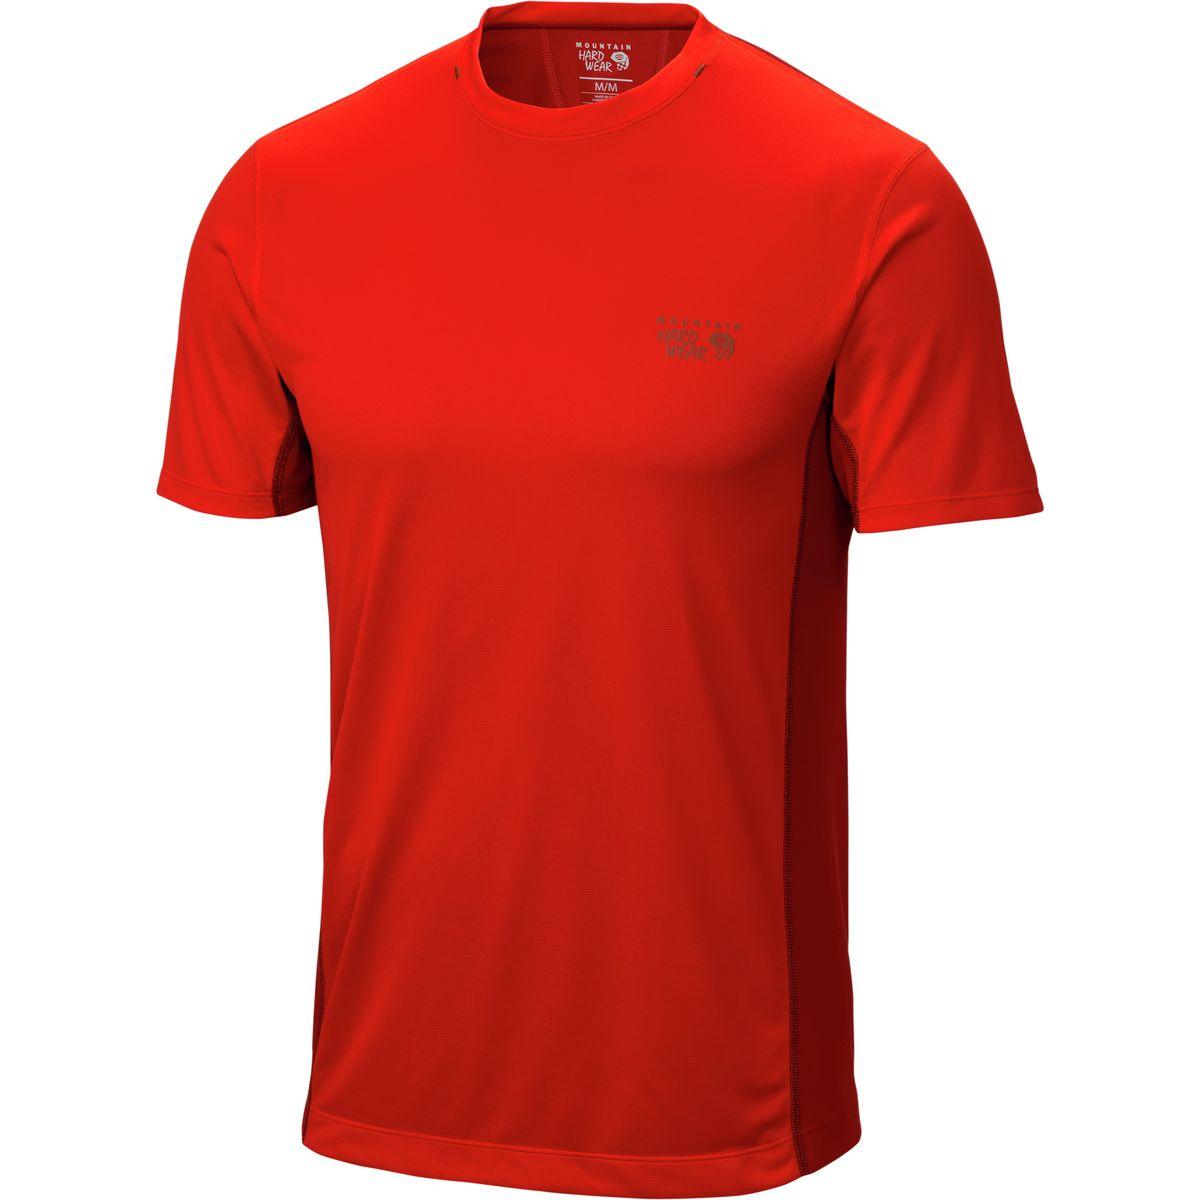 Short Sleeve Performance Tops